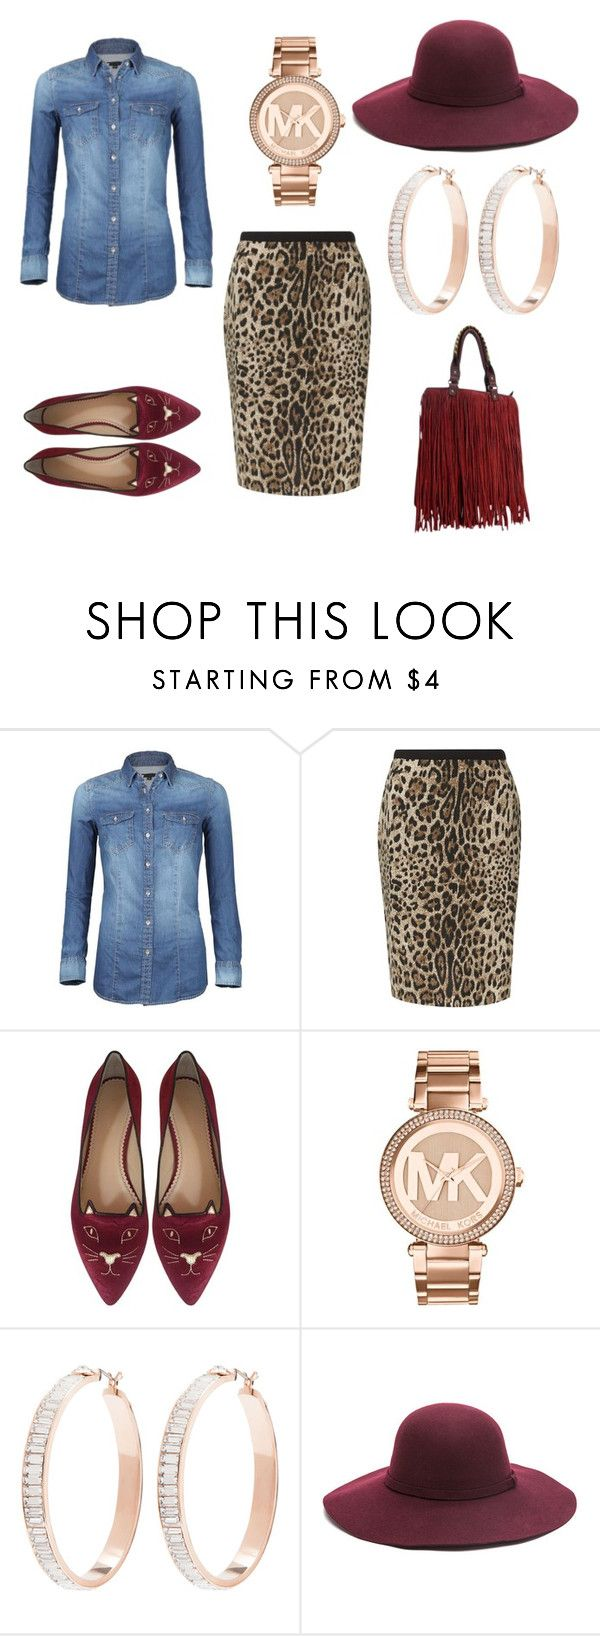 """""""casual friday"""" by keischa-pruden ❤ liked on Polyvore featuring Precis Petite, Charlotte Olympia, Michael Kors and Henri Bendel"""